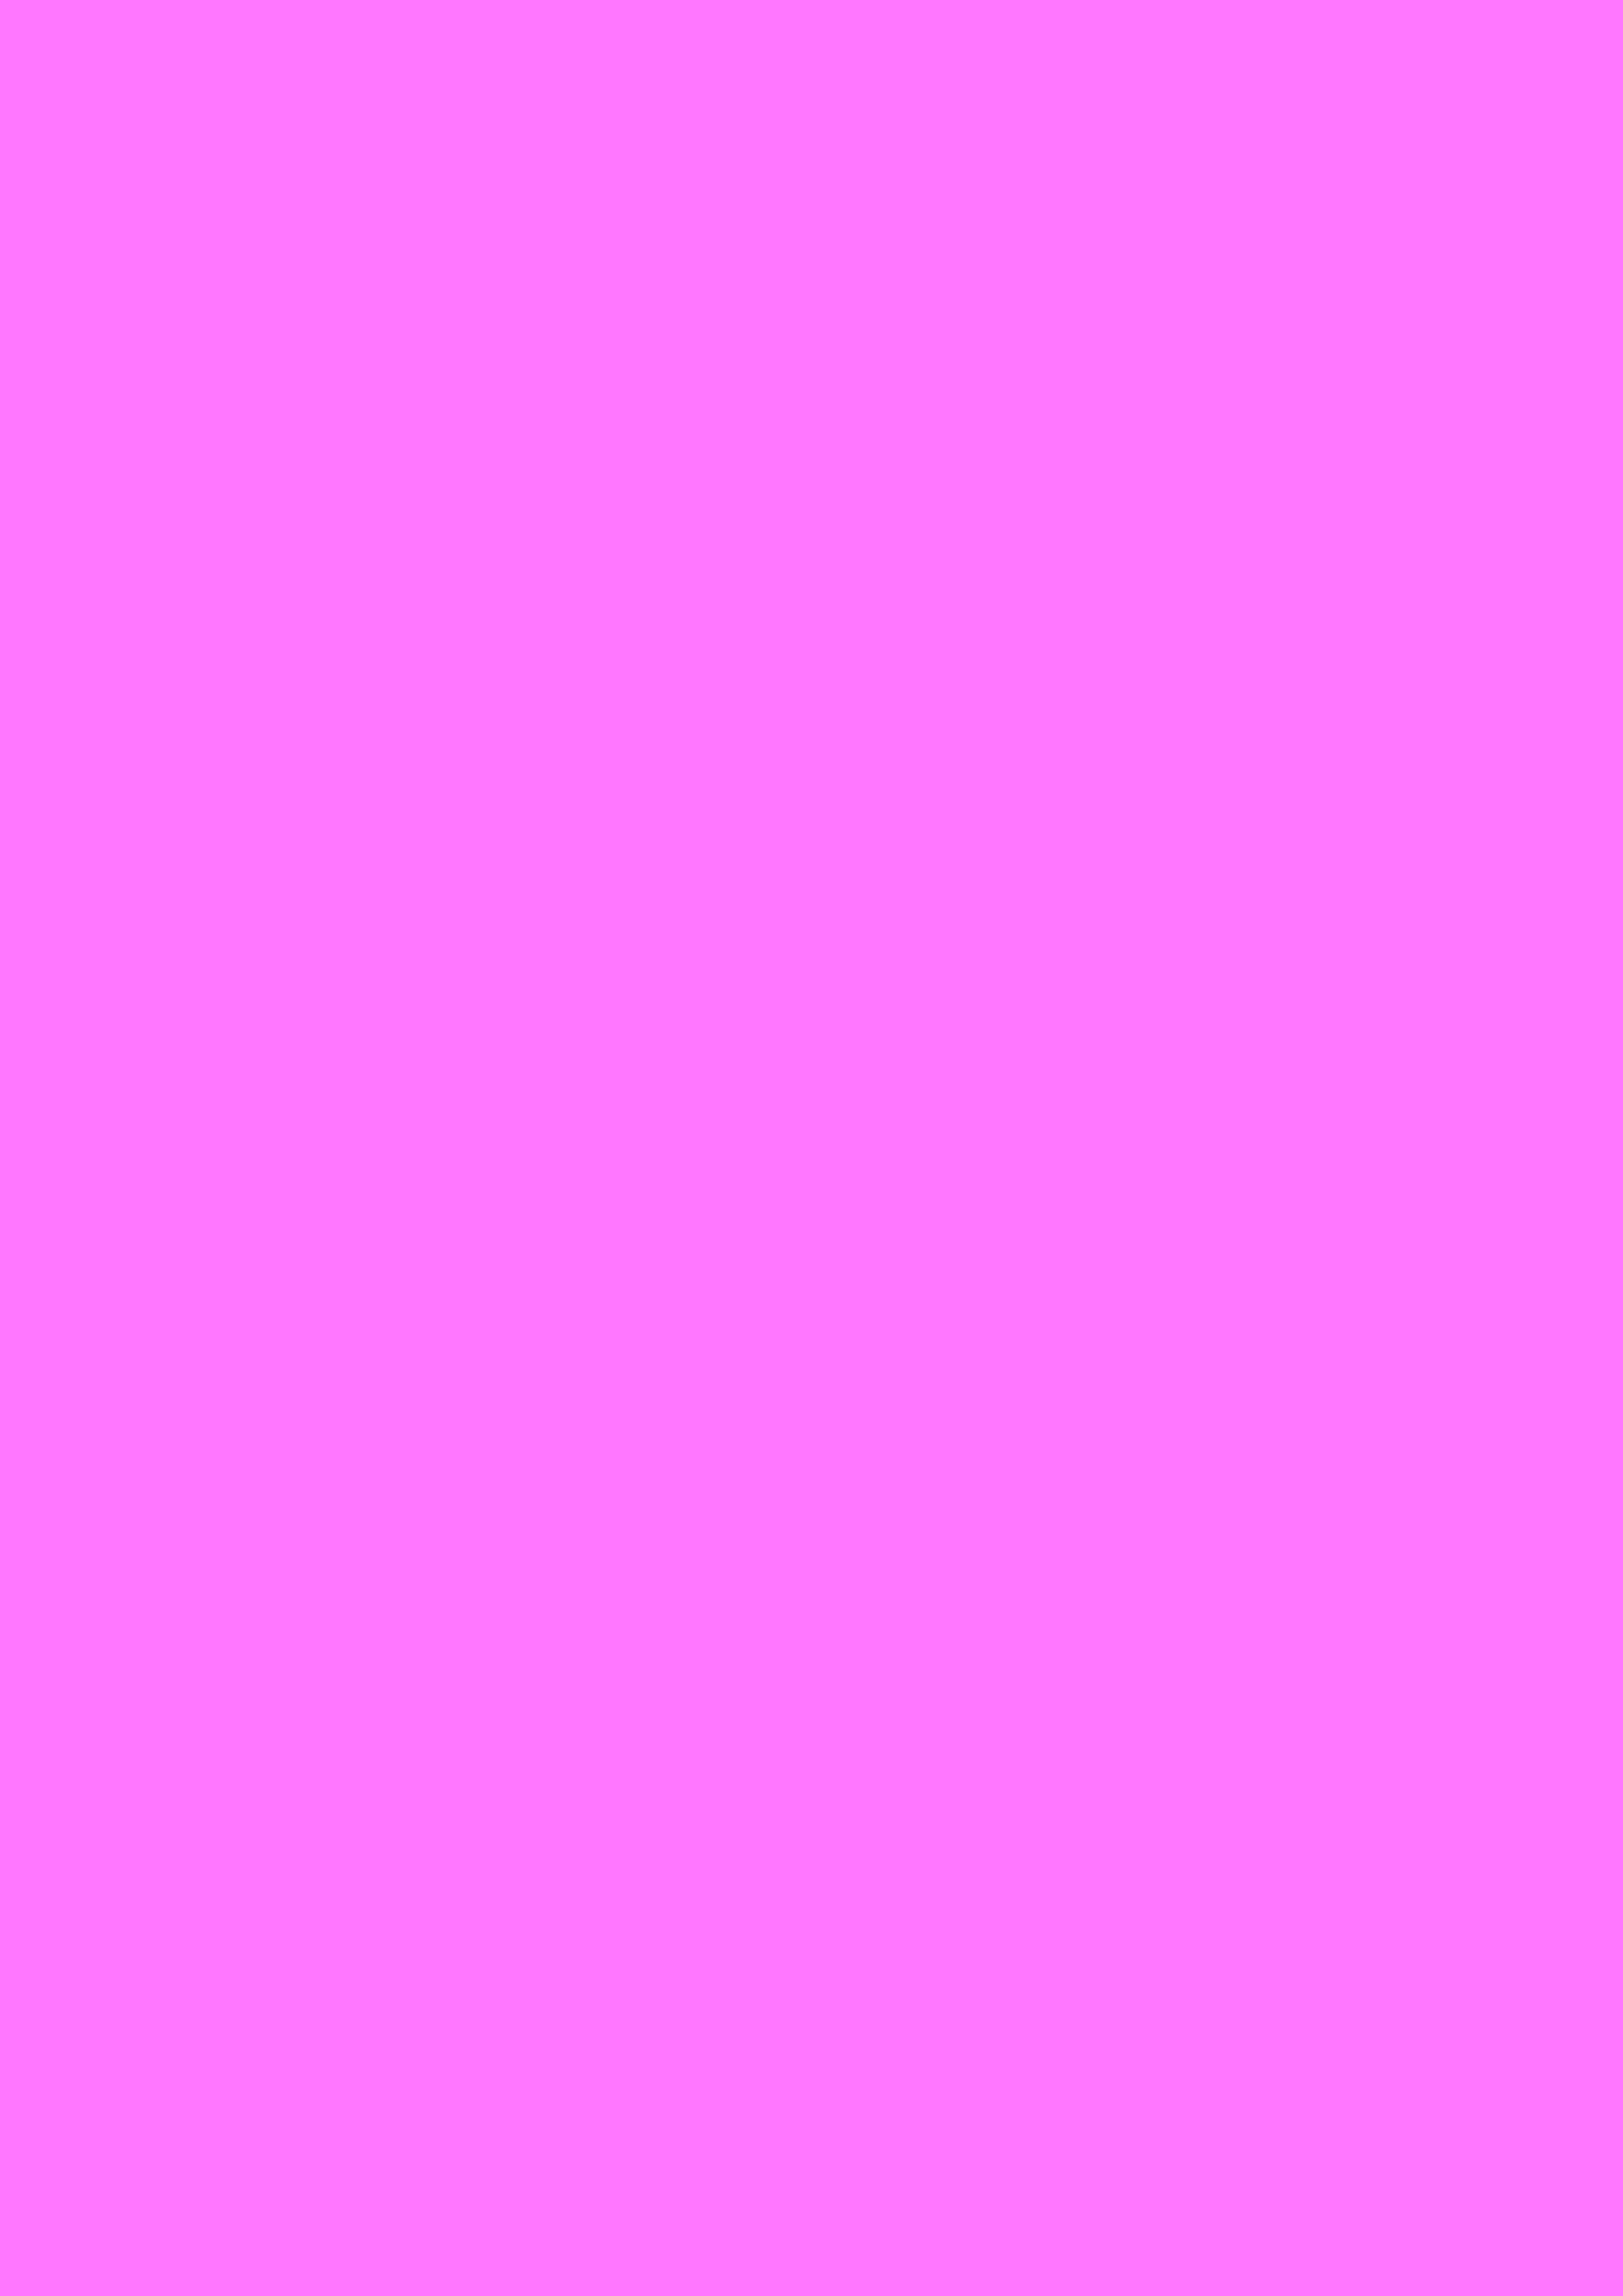 2480x3508 Fuchsia Pink Solid Color Background